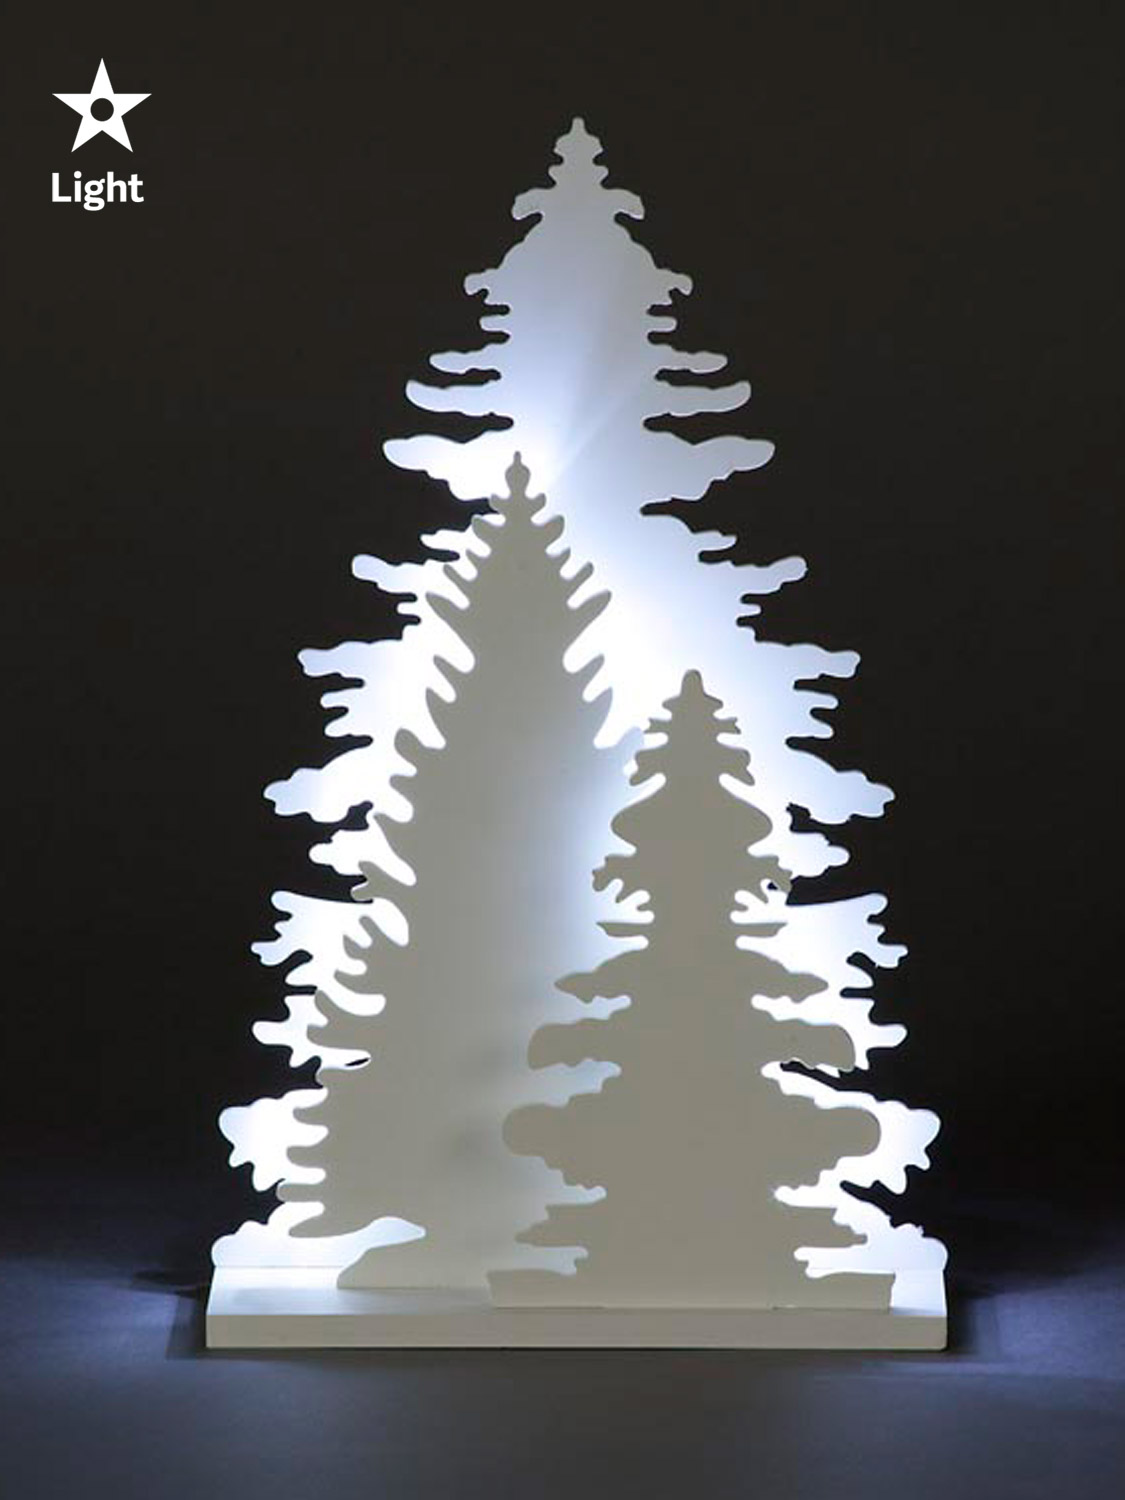 brighten up your home this christmas with these beautiful cut out white wooden decorations suitable for indoor use only